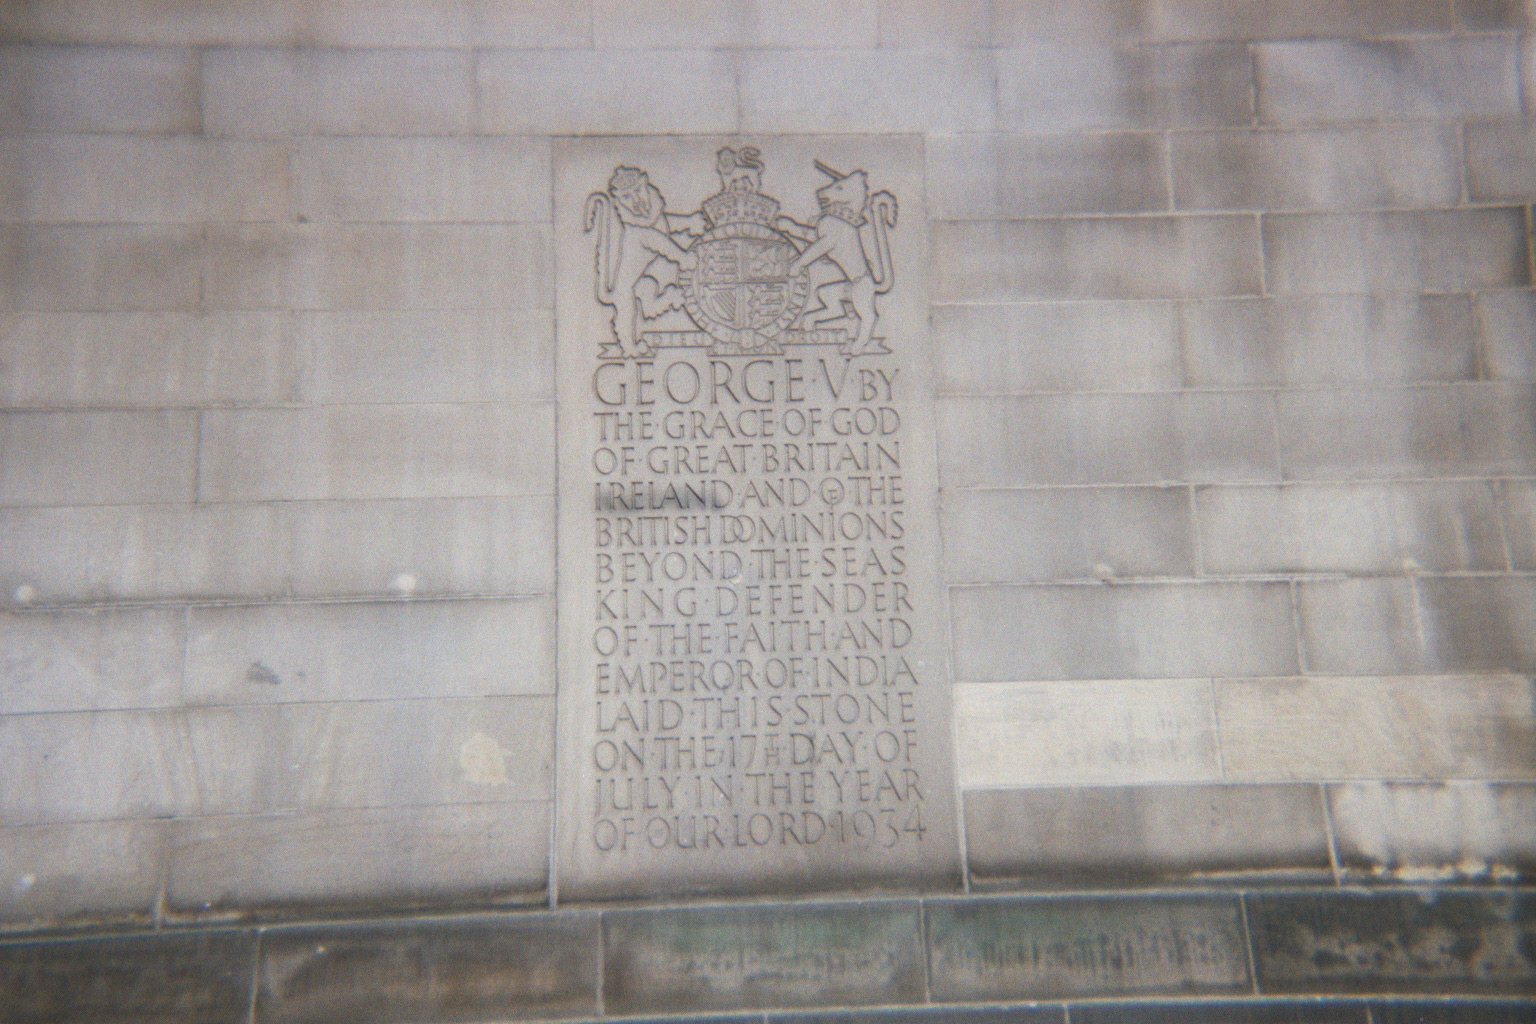 Plaque from the opening of Central Library, St Peters Square, Manchester